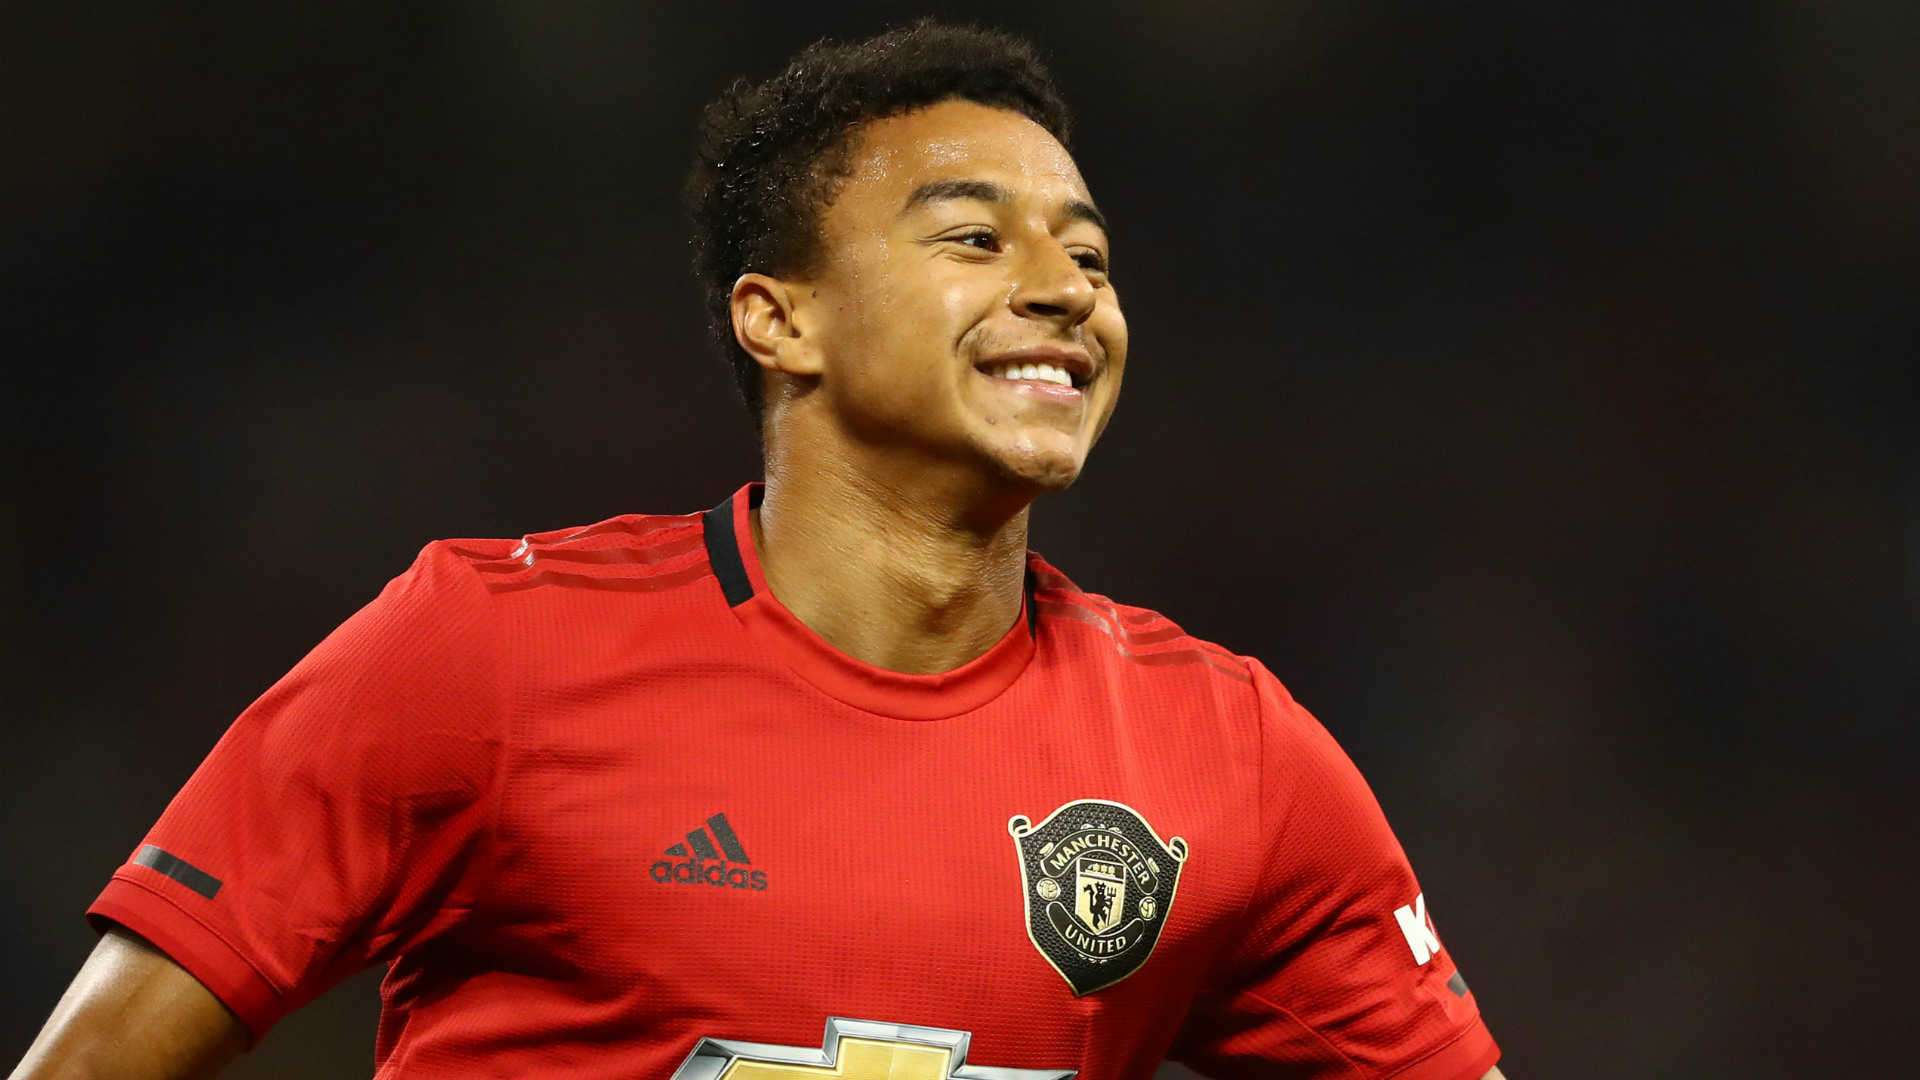 Solskjaer wants Lingard 'back scoring and making assists' for Man Utd after easing off on social media